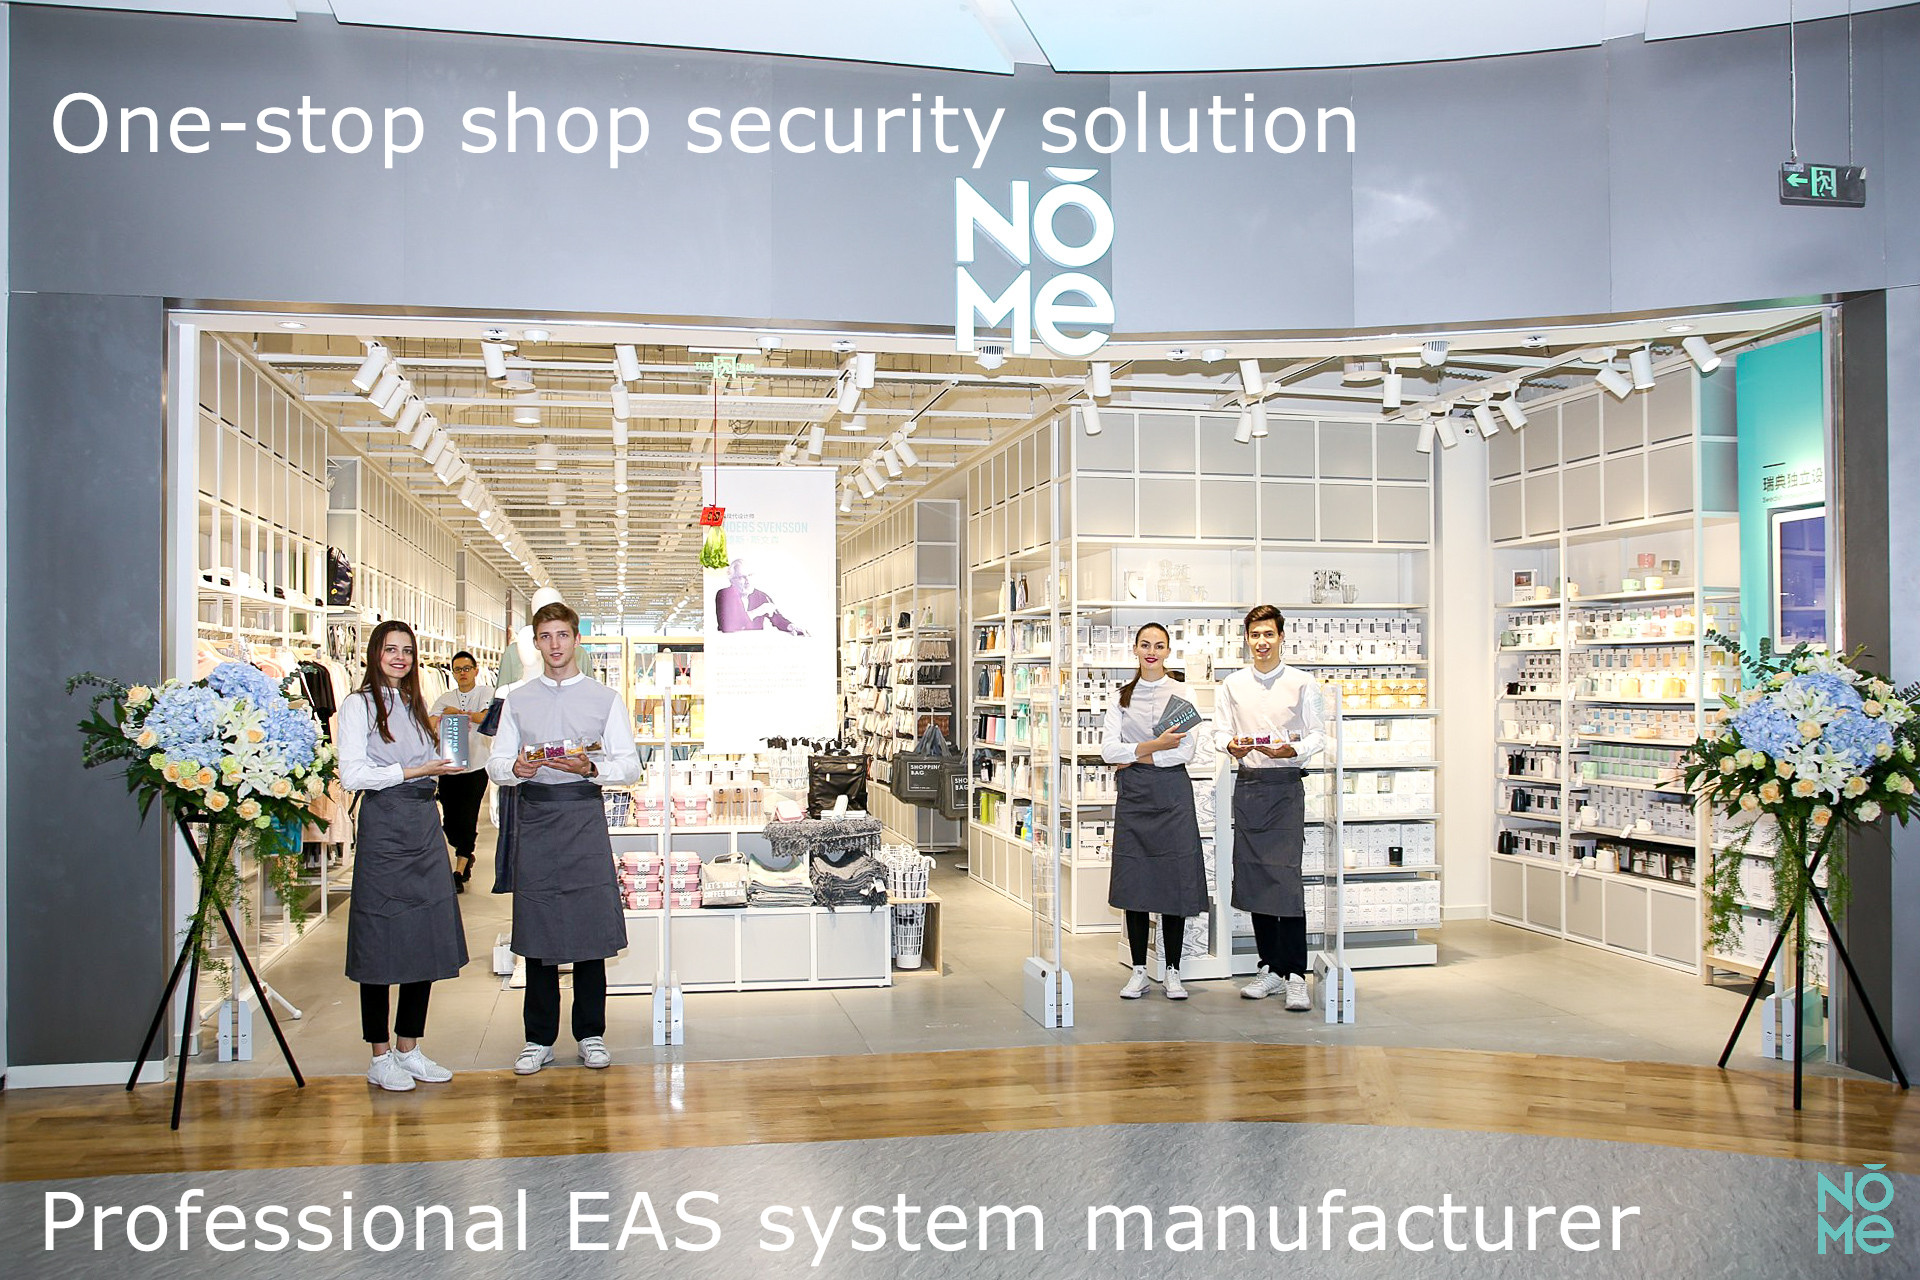 Bohang retail security systems